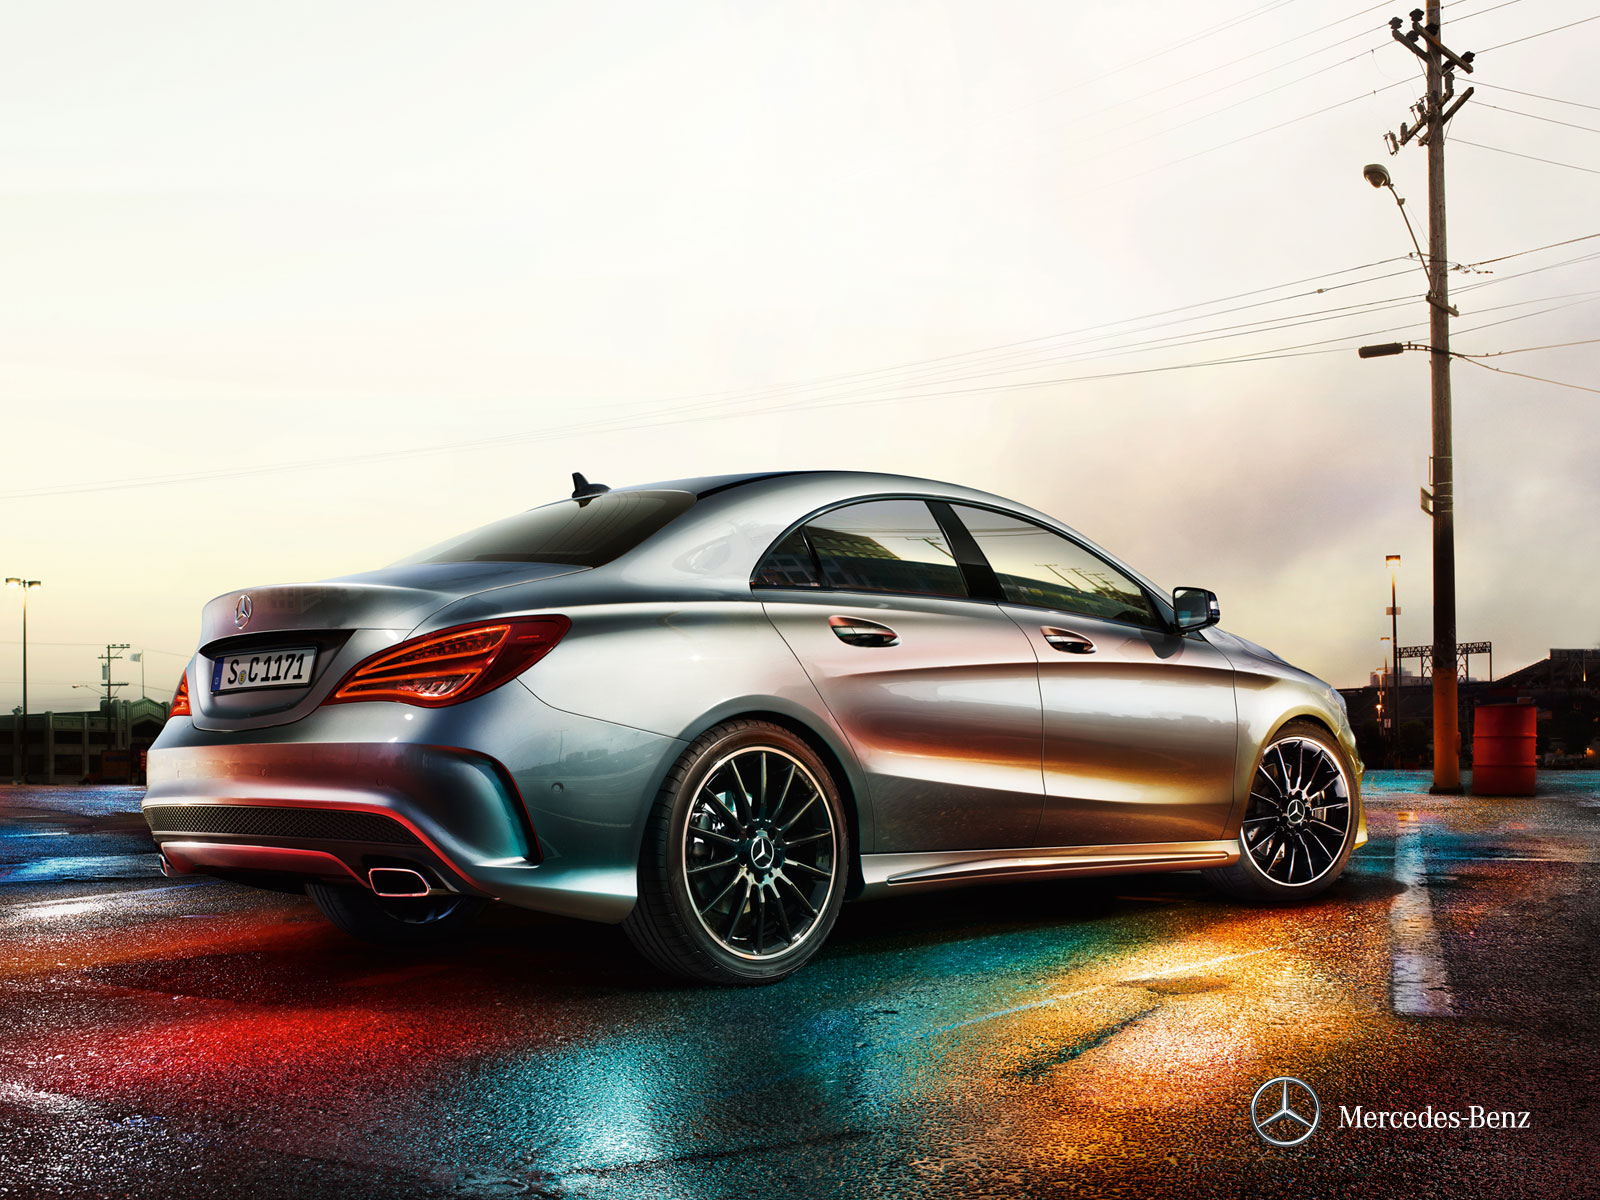 Mercedes Benz Cla 250 Wallpaper 23 images on Genchiinfo 1600x1200